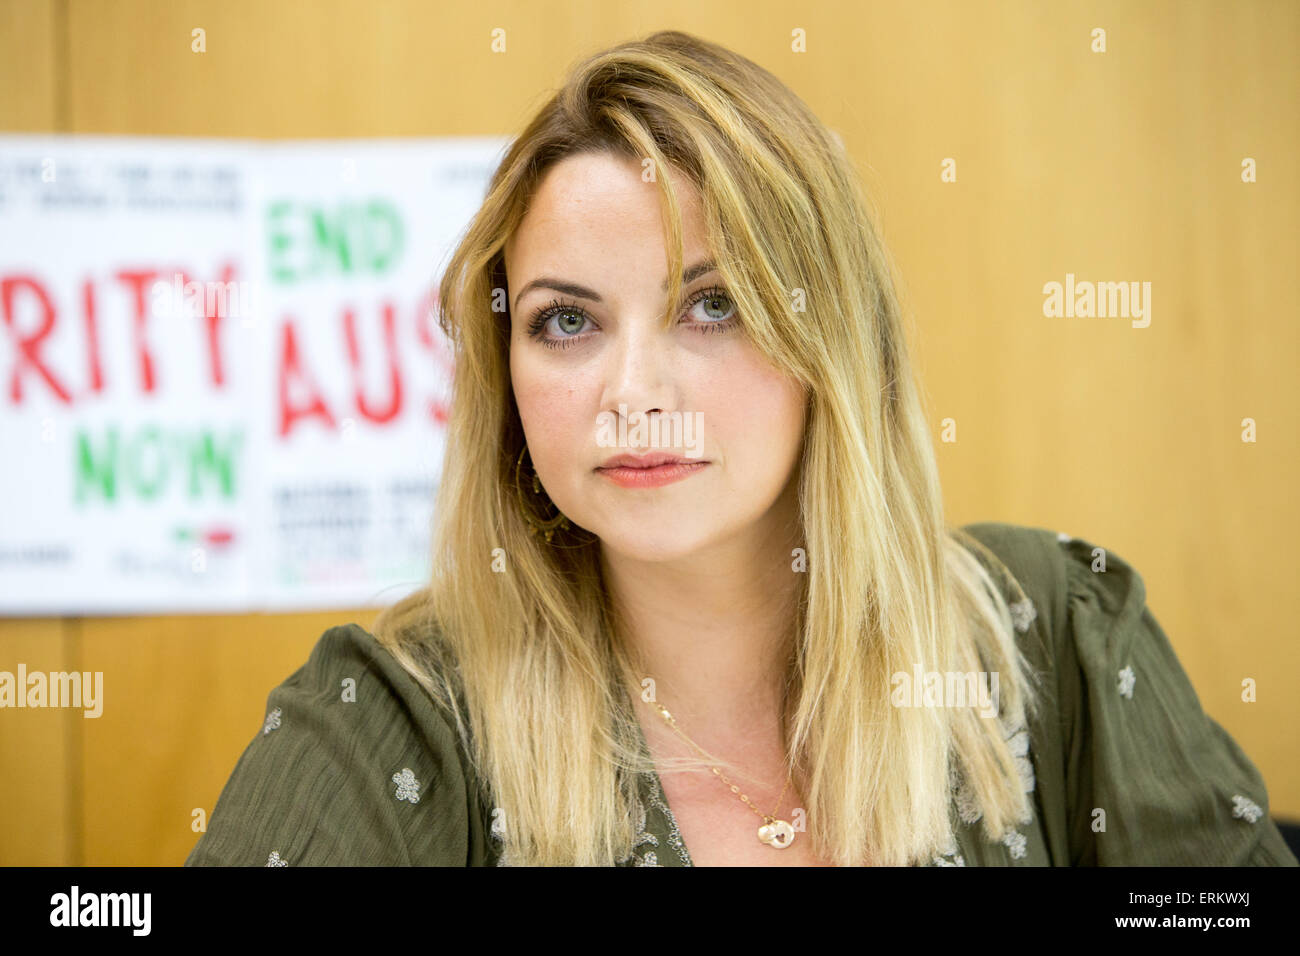 Welsh singer Charlotte Church gives a press conference ahead of the anti austerity March on June 20th - Stock Image